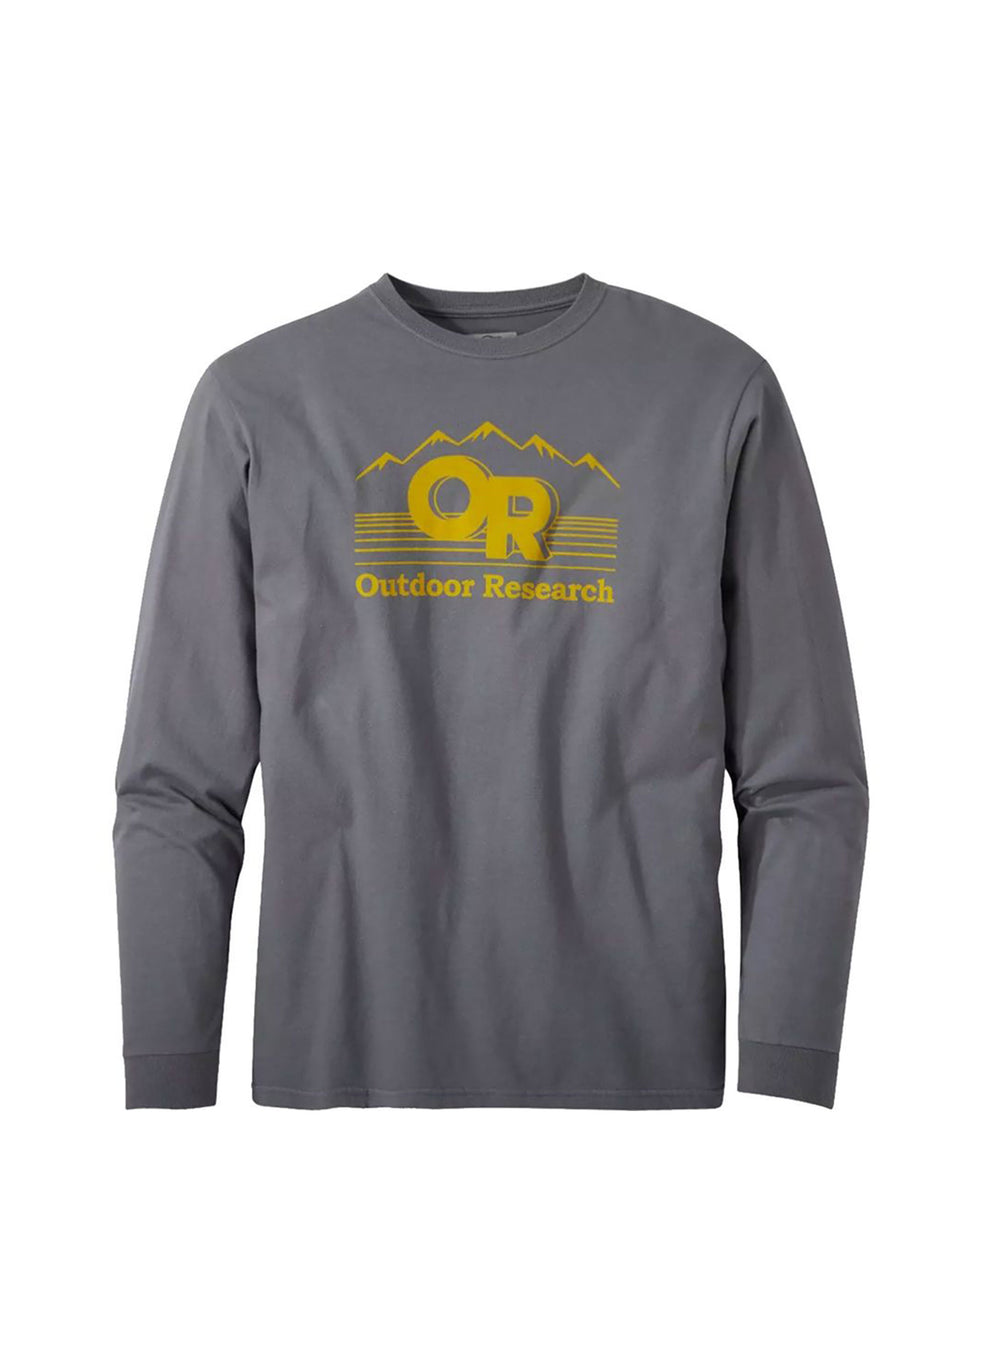 Outdoor Research Advocate Long Sleeve Tee - Men's